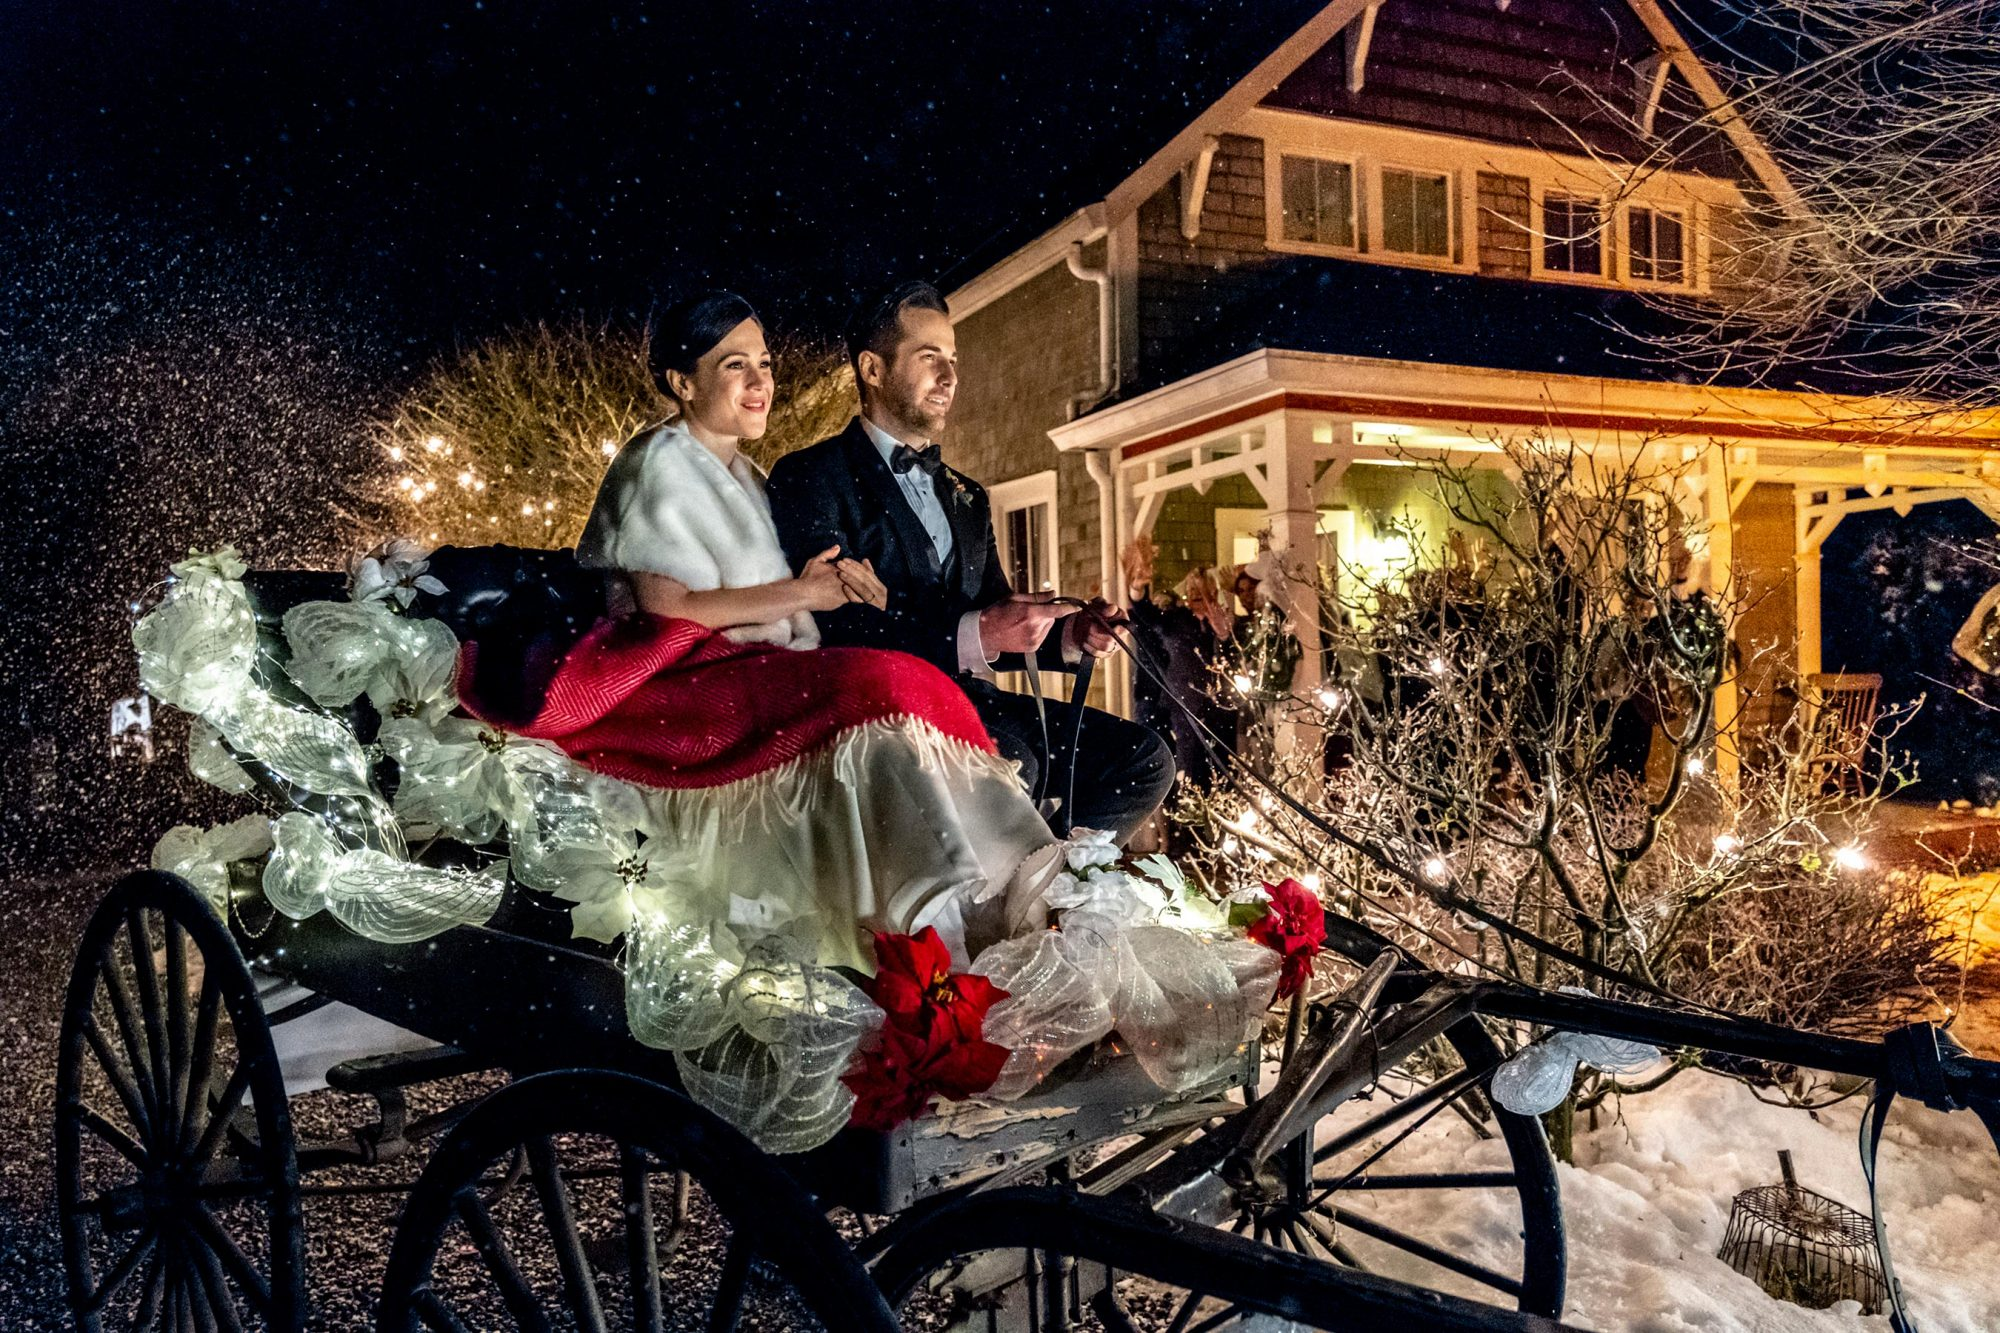 Marrying Father Christmas  (Nov. 4, 9 p.m. ET/PT, Hallmark Movies & Mysteries)